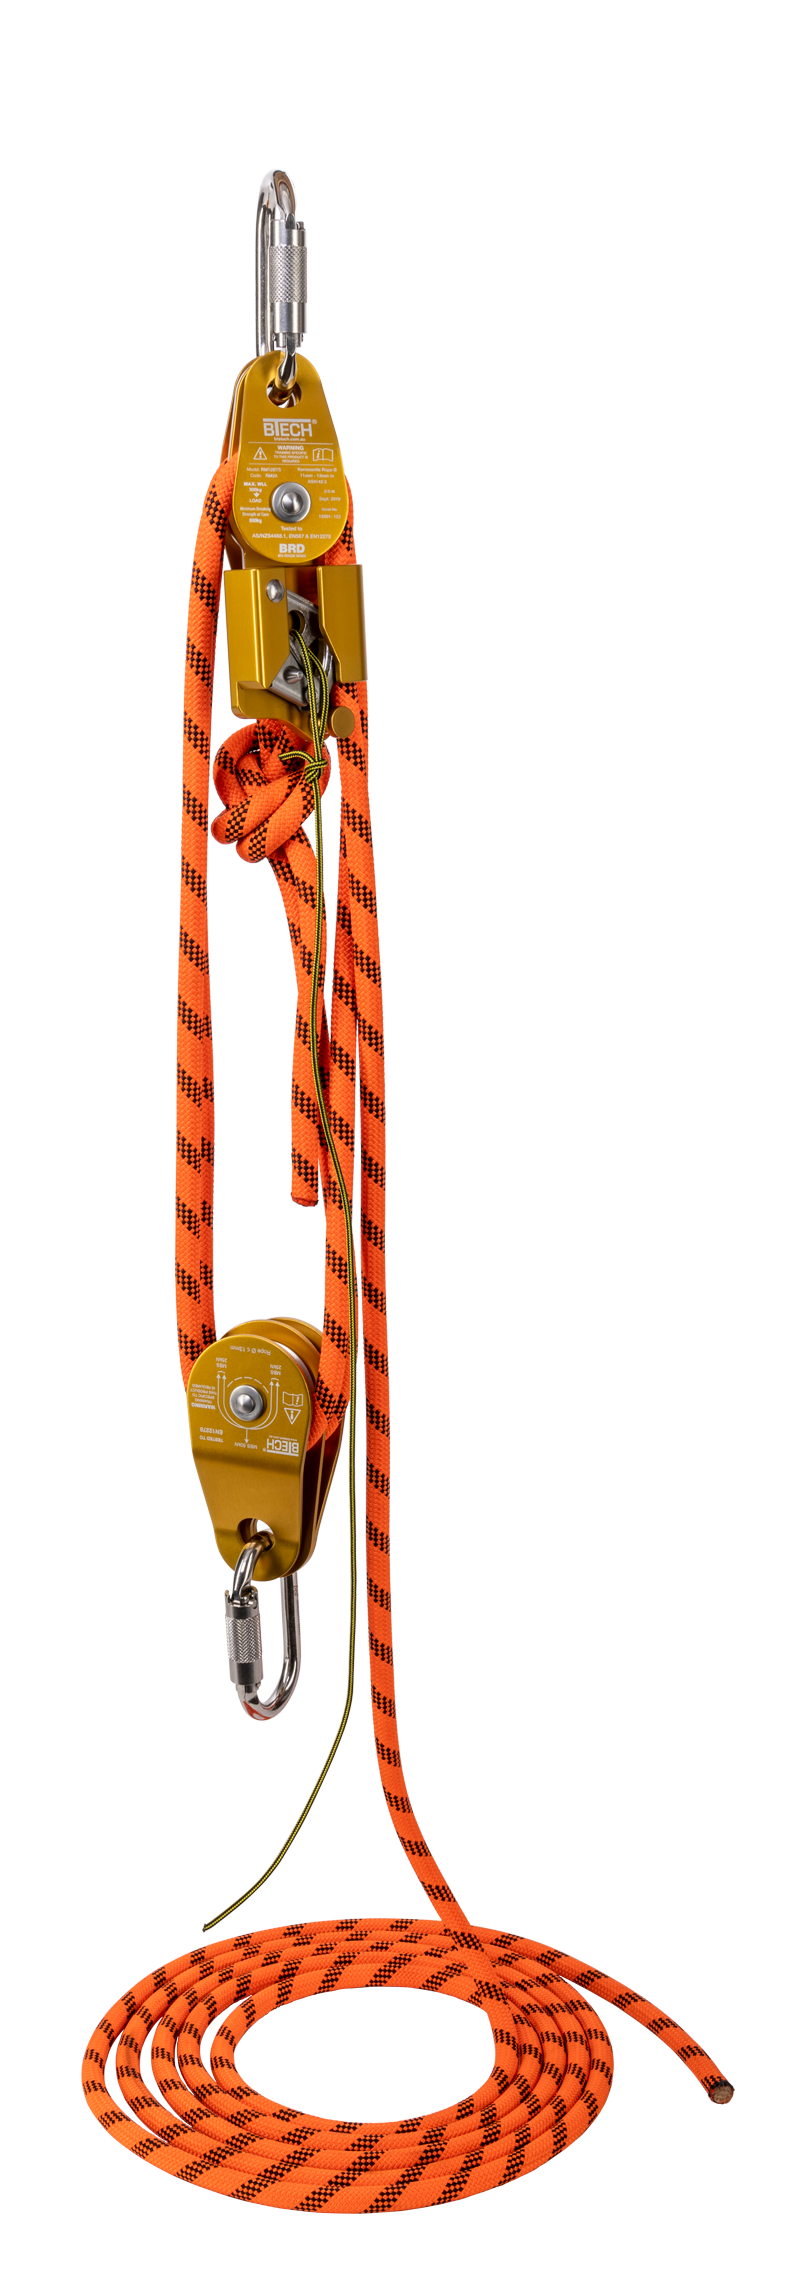 BTECH Rescue Device With Rope